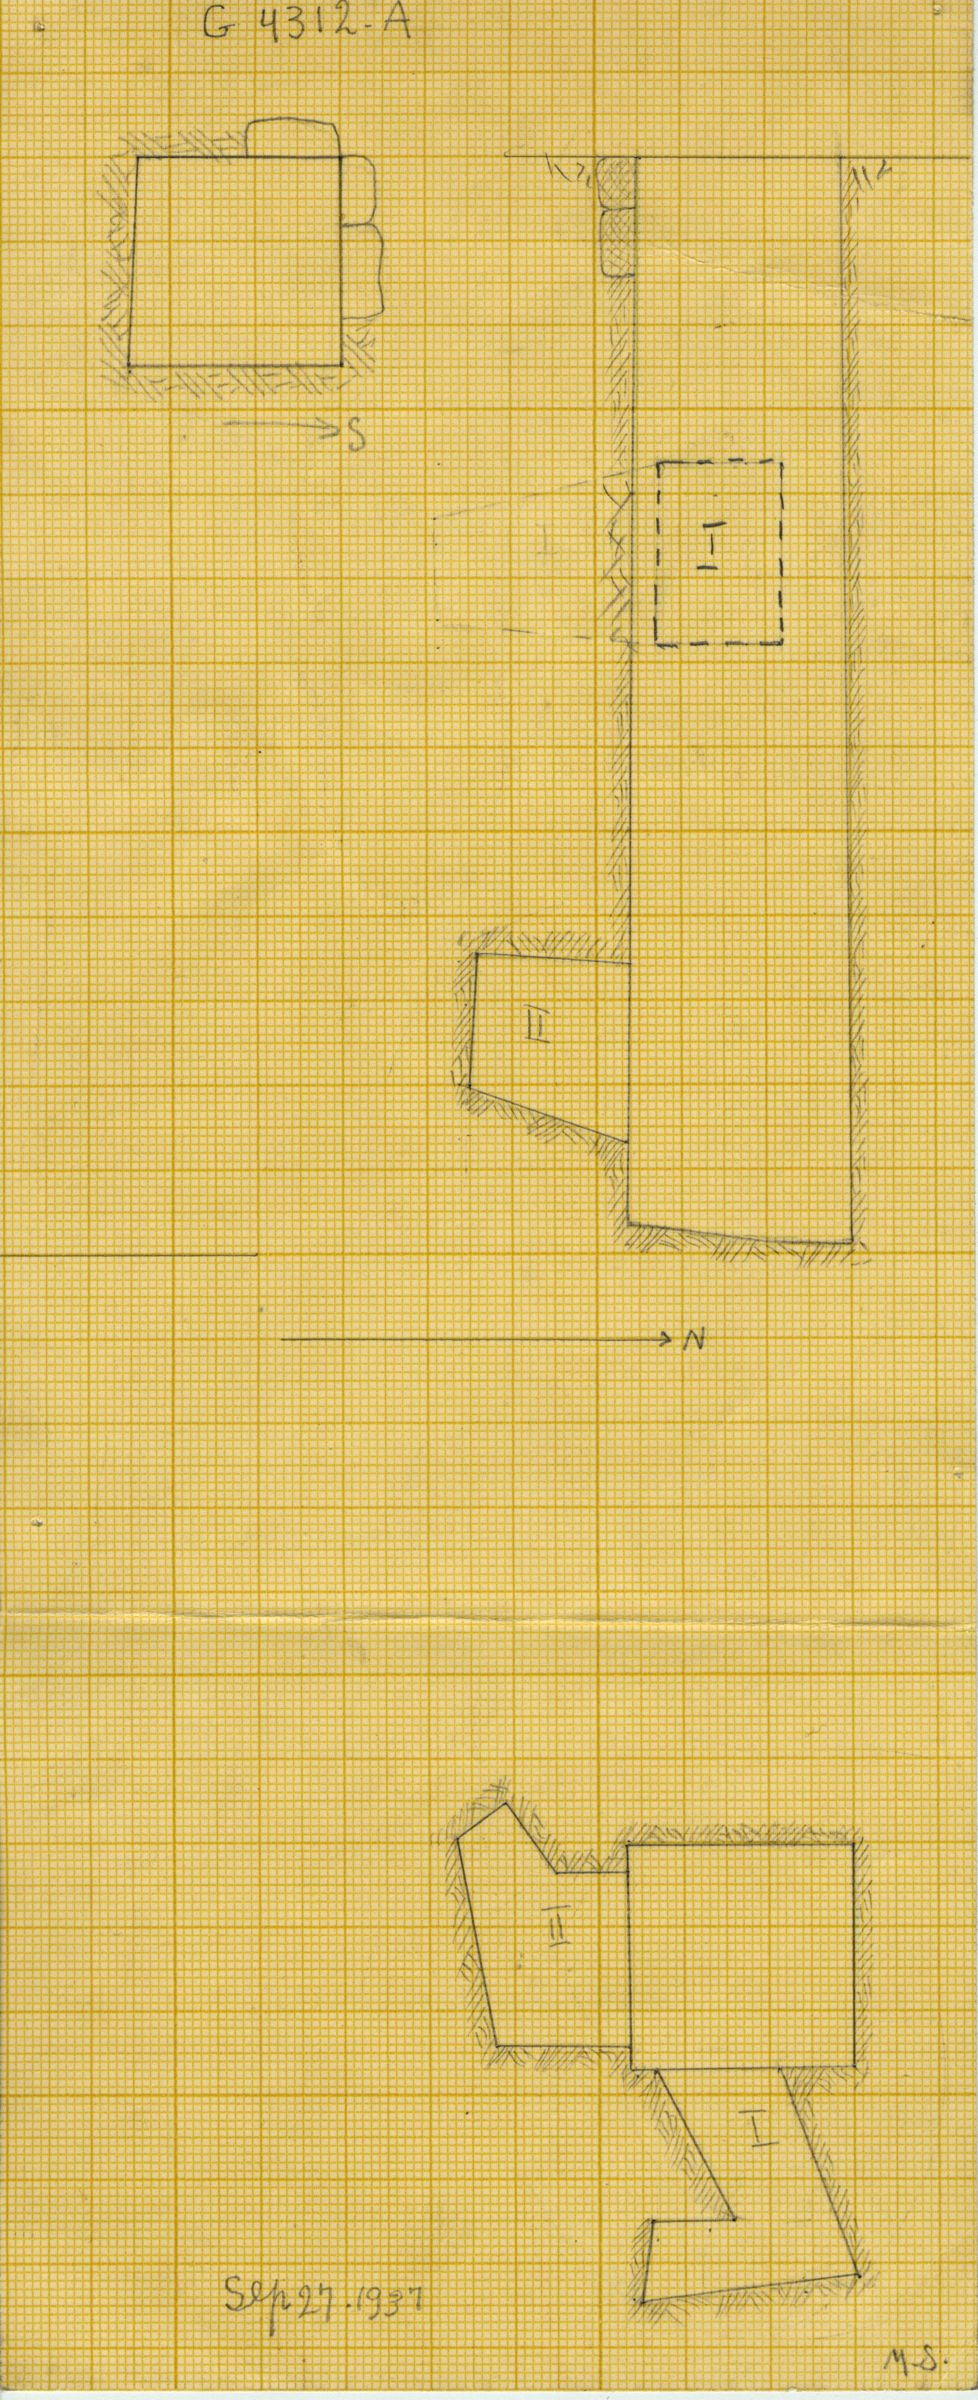 Maps and plans: G 4312, Shaft A